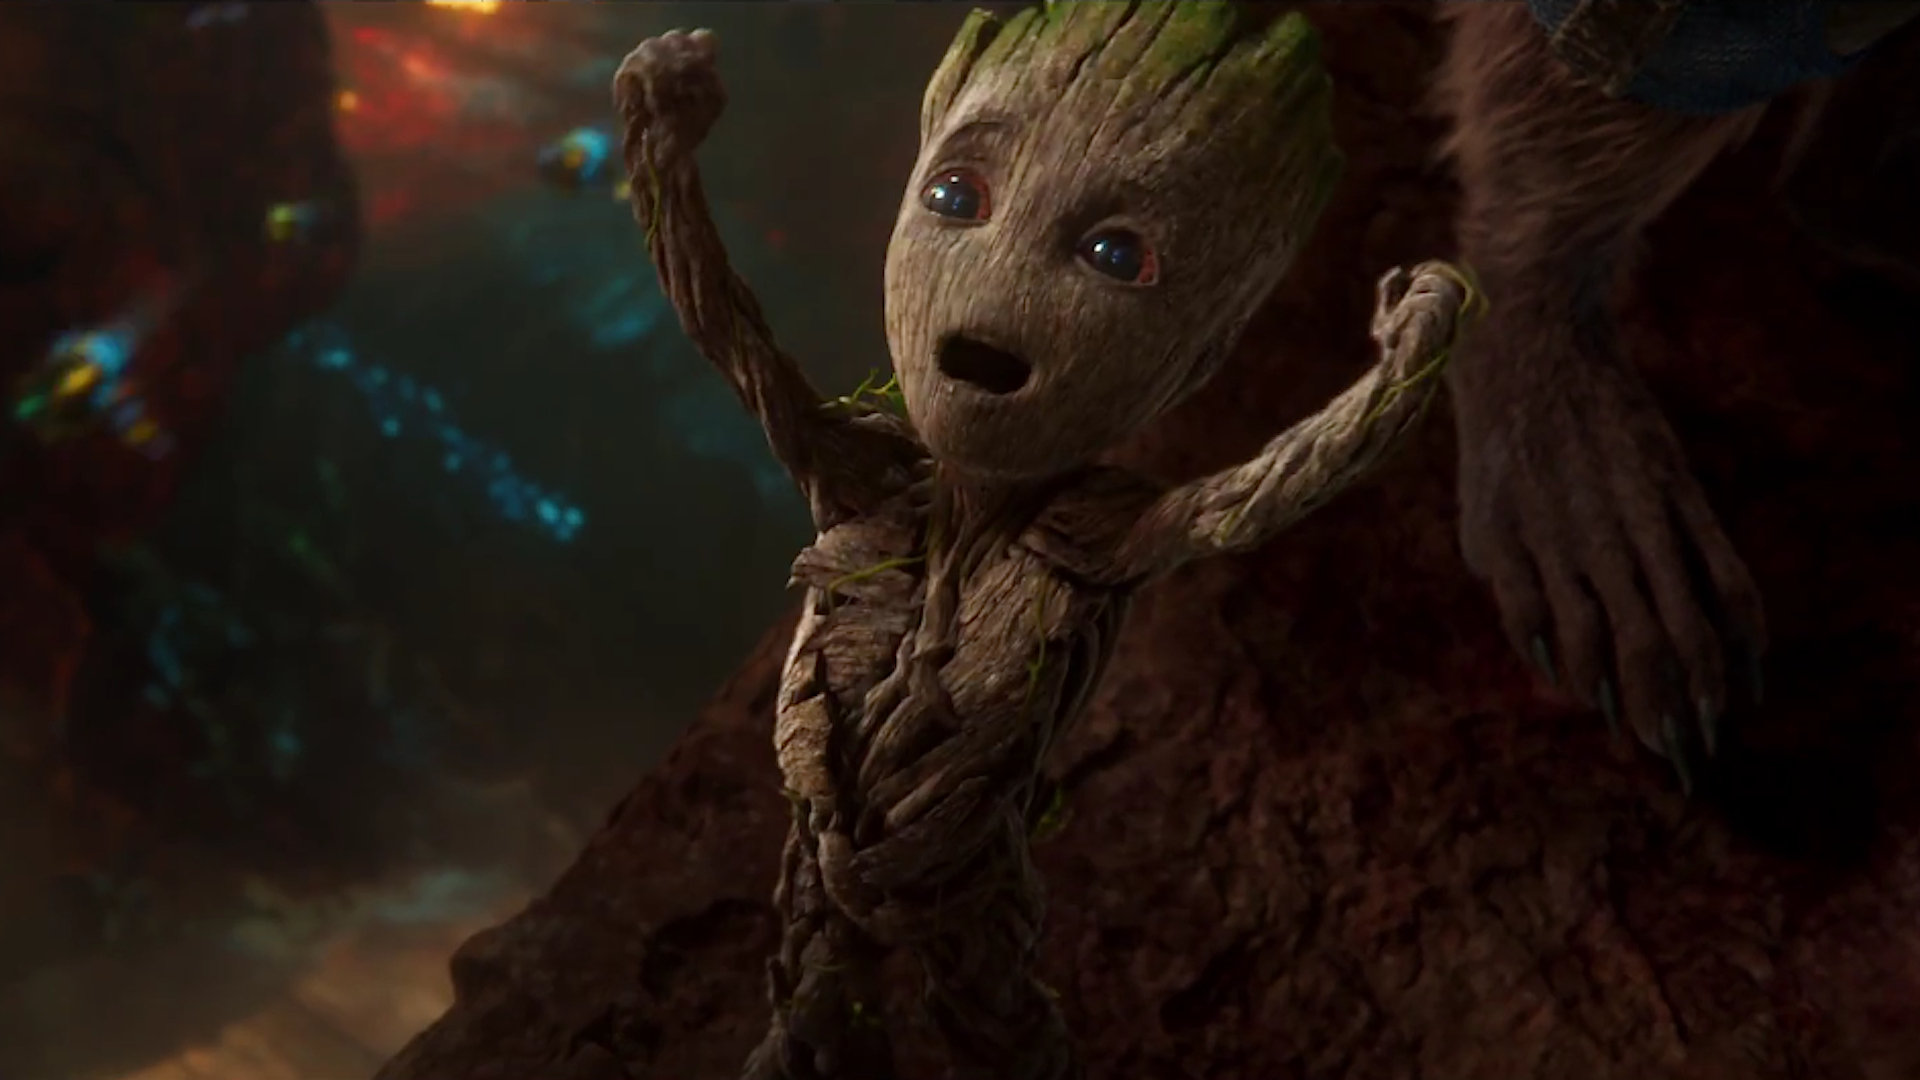 baby groot wallpapers hd wallpapers | wallpapers for desktop in 2019